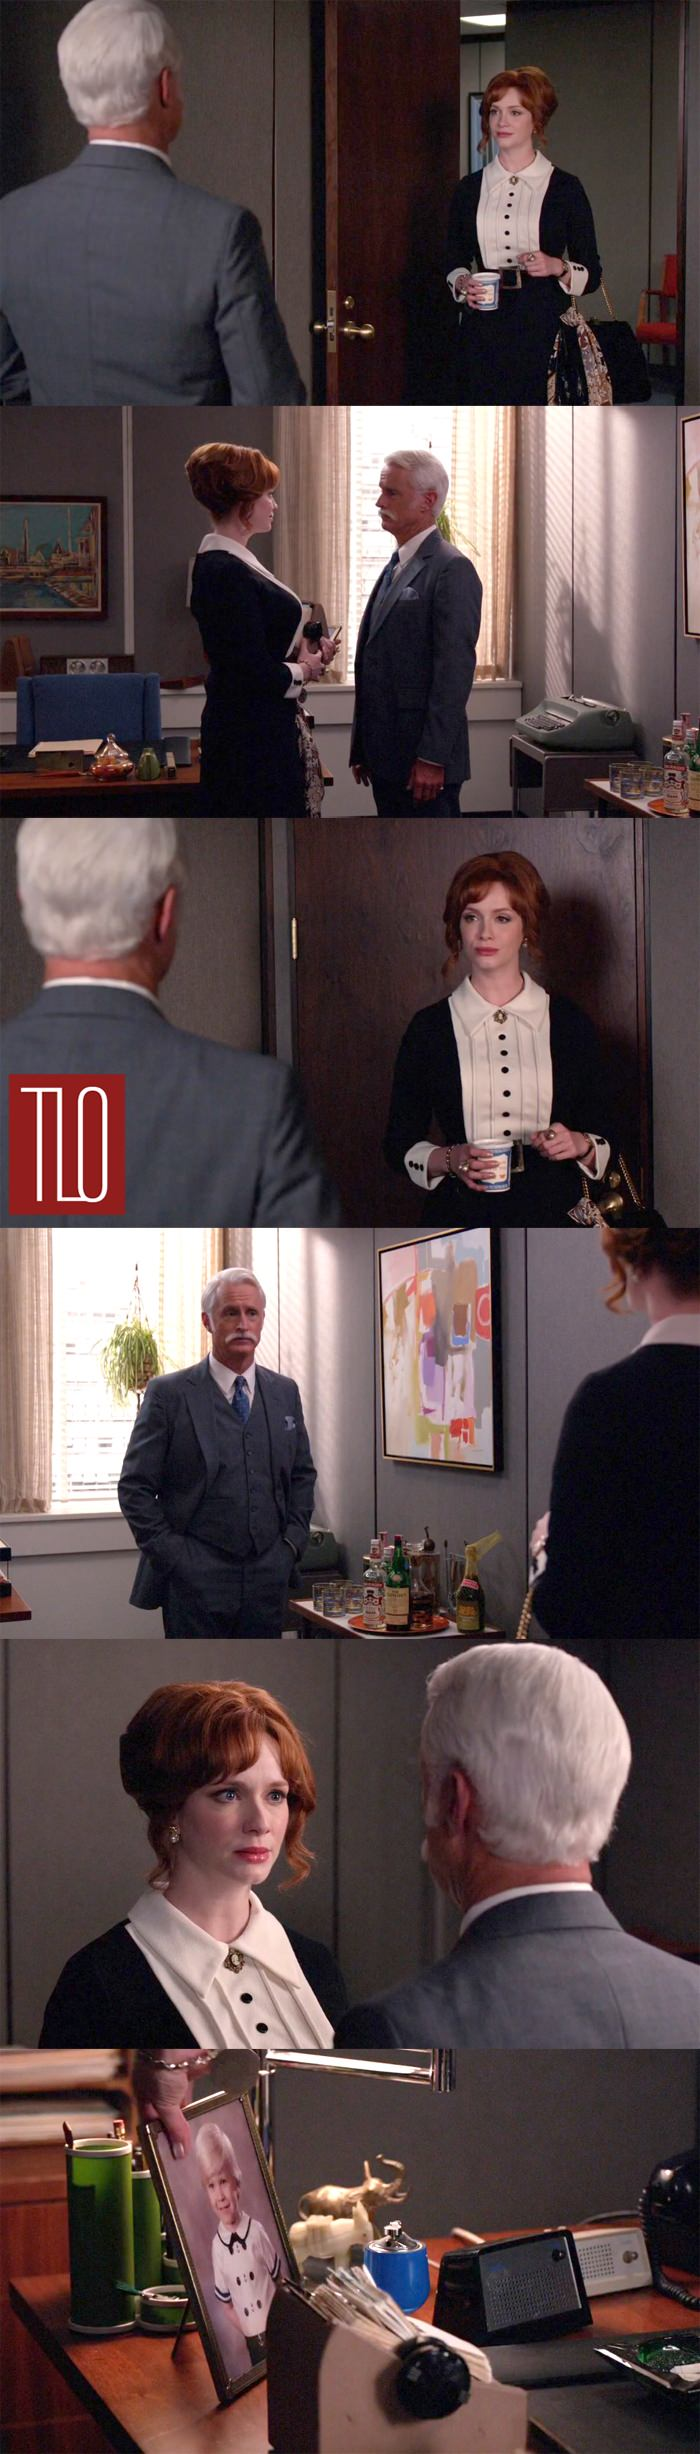 Mad-Men-Season-7-Episode-12-Mad-Style-Costumes-Tom-Lorenzo-Site-TLO (32)